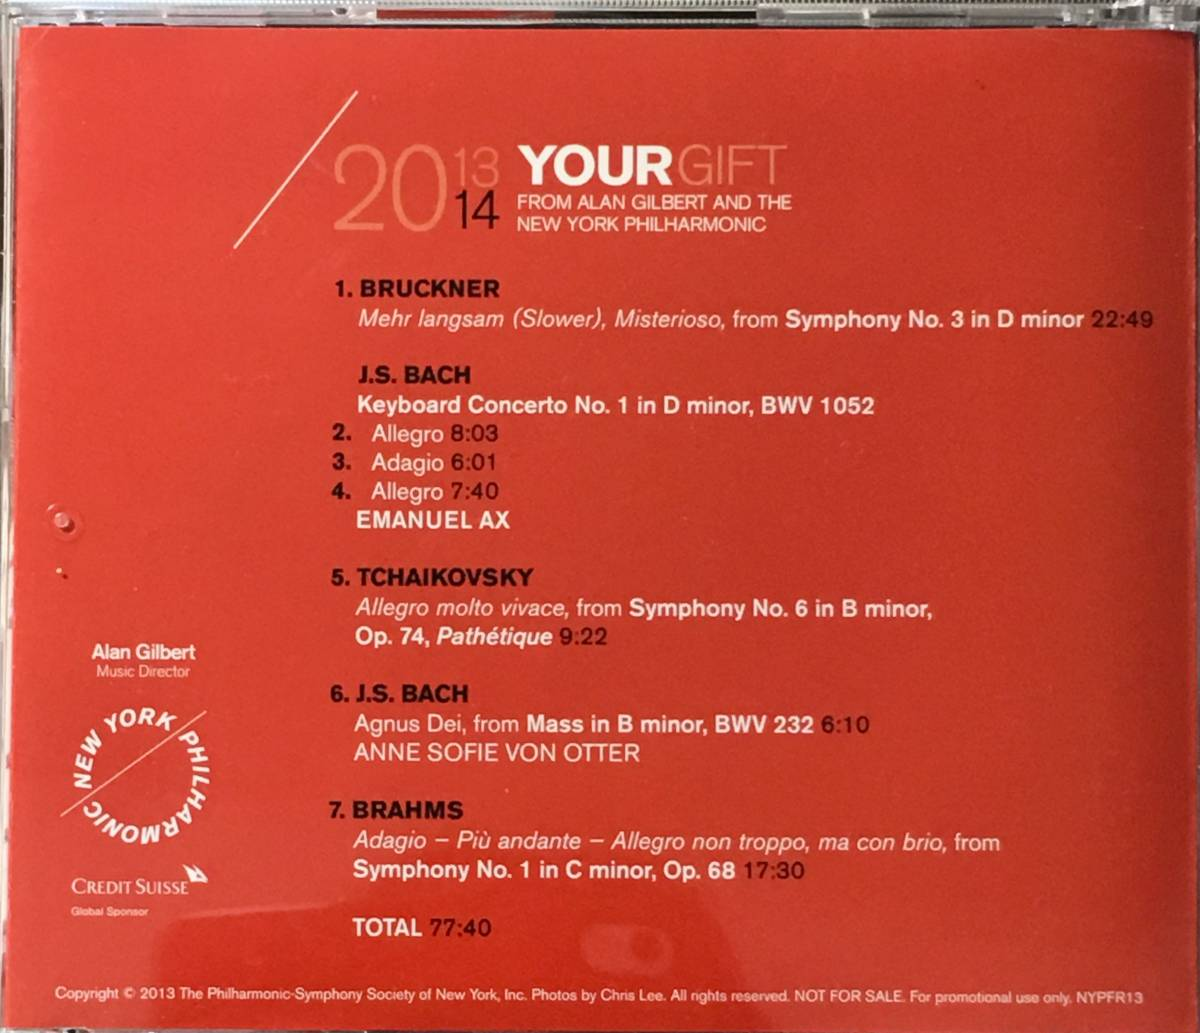 (Z0H)★レア盤/CREDIT SUISSE/2013-14 Your Gift from Alan Gilbert & The Newyork Philharmonic/Emanuel Ax/Anne Sofie von Otter★_画像4